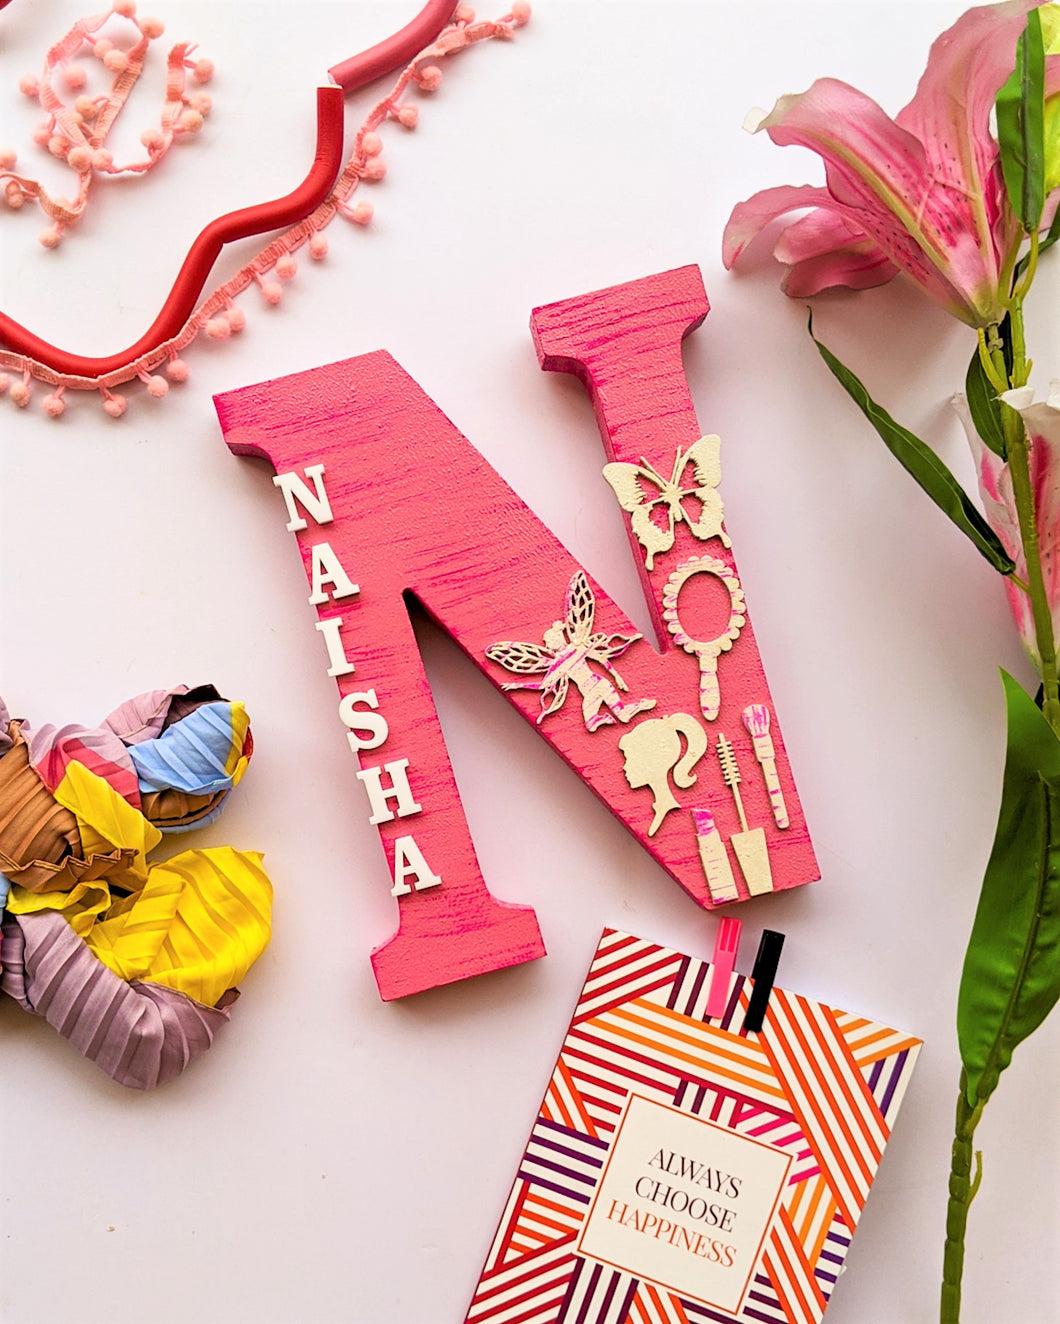 Wooden designer monogrammed initials decorated with embellishments | Pink